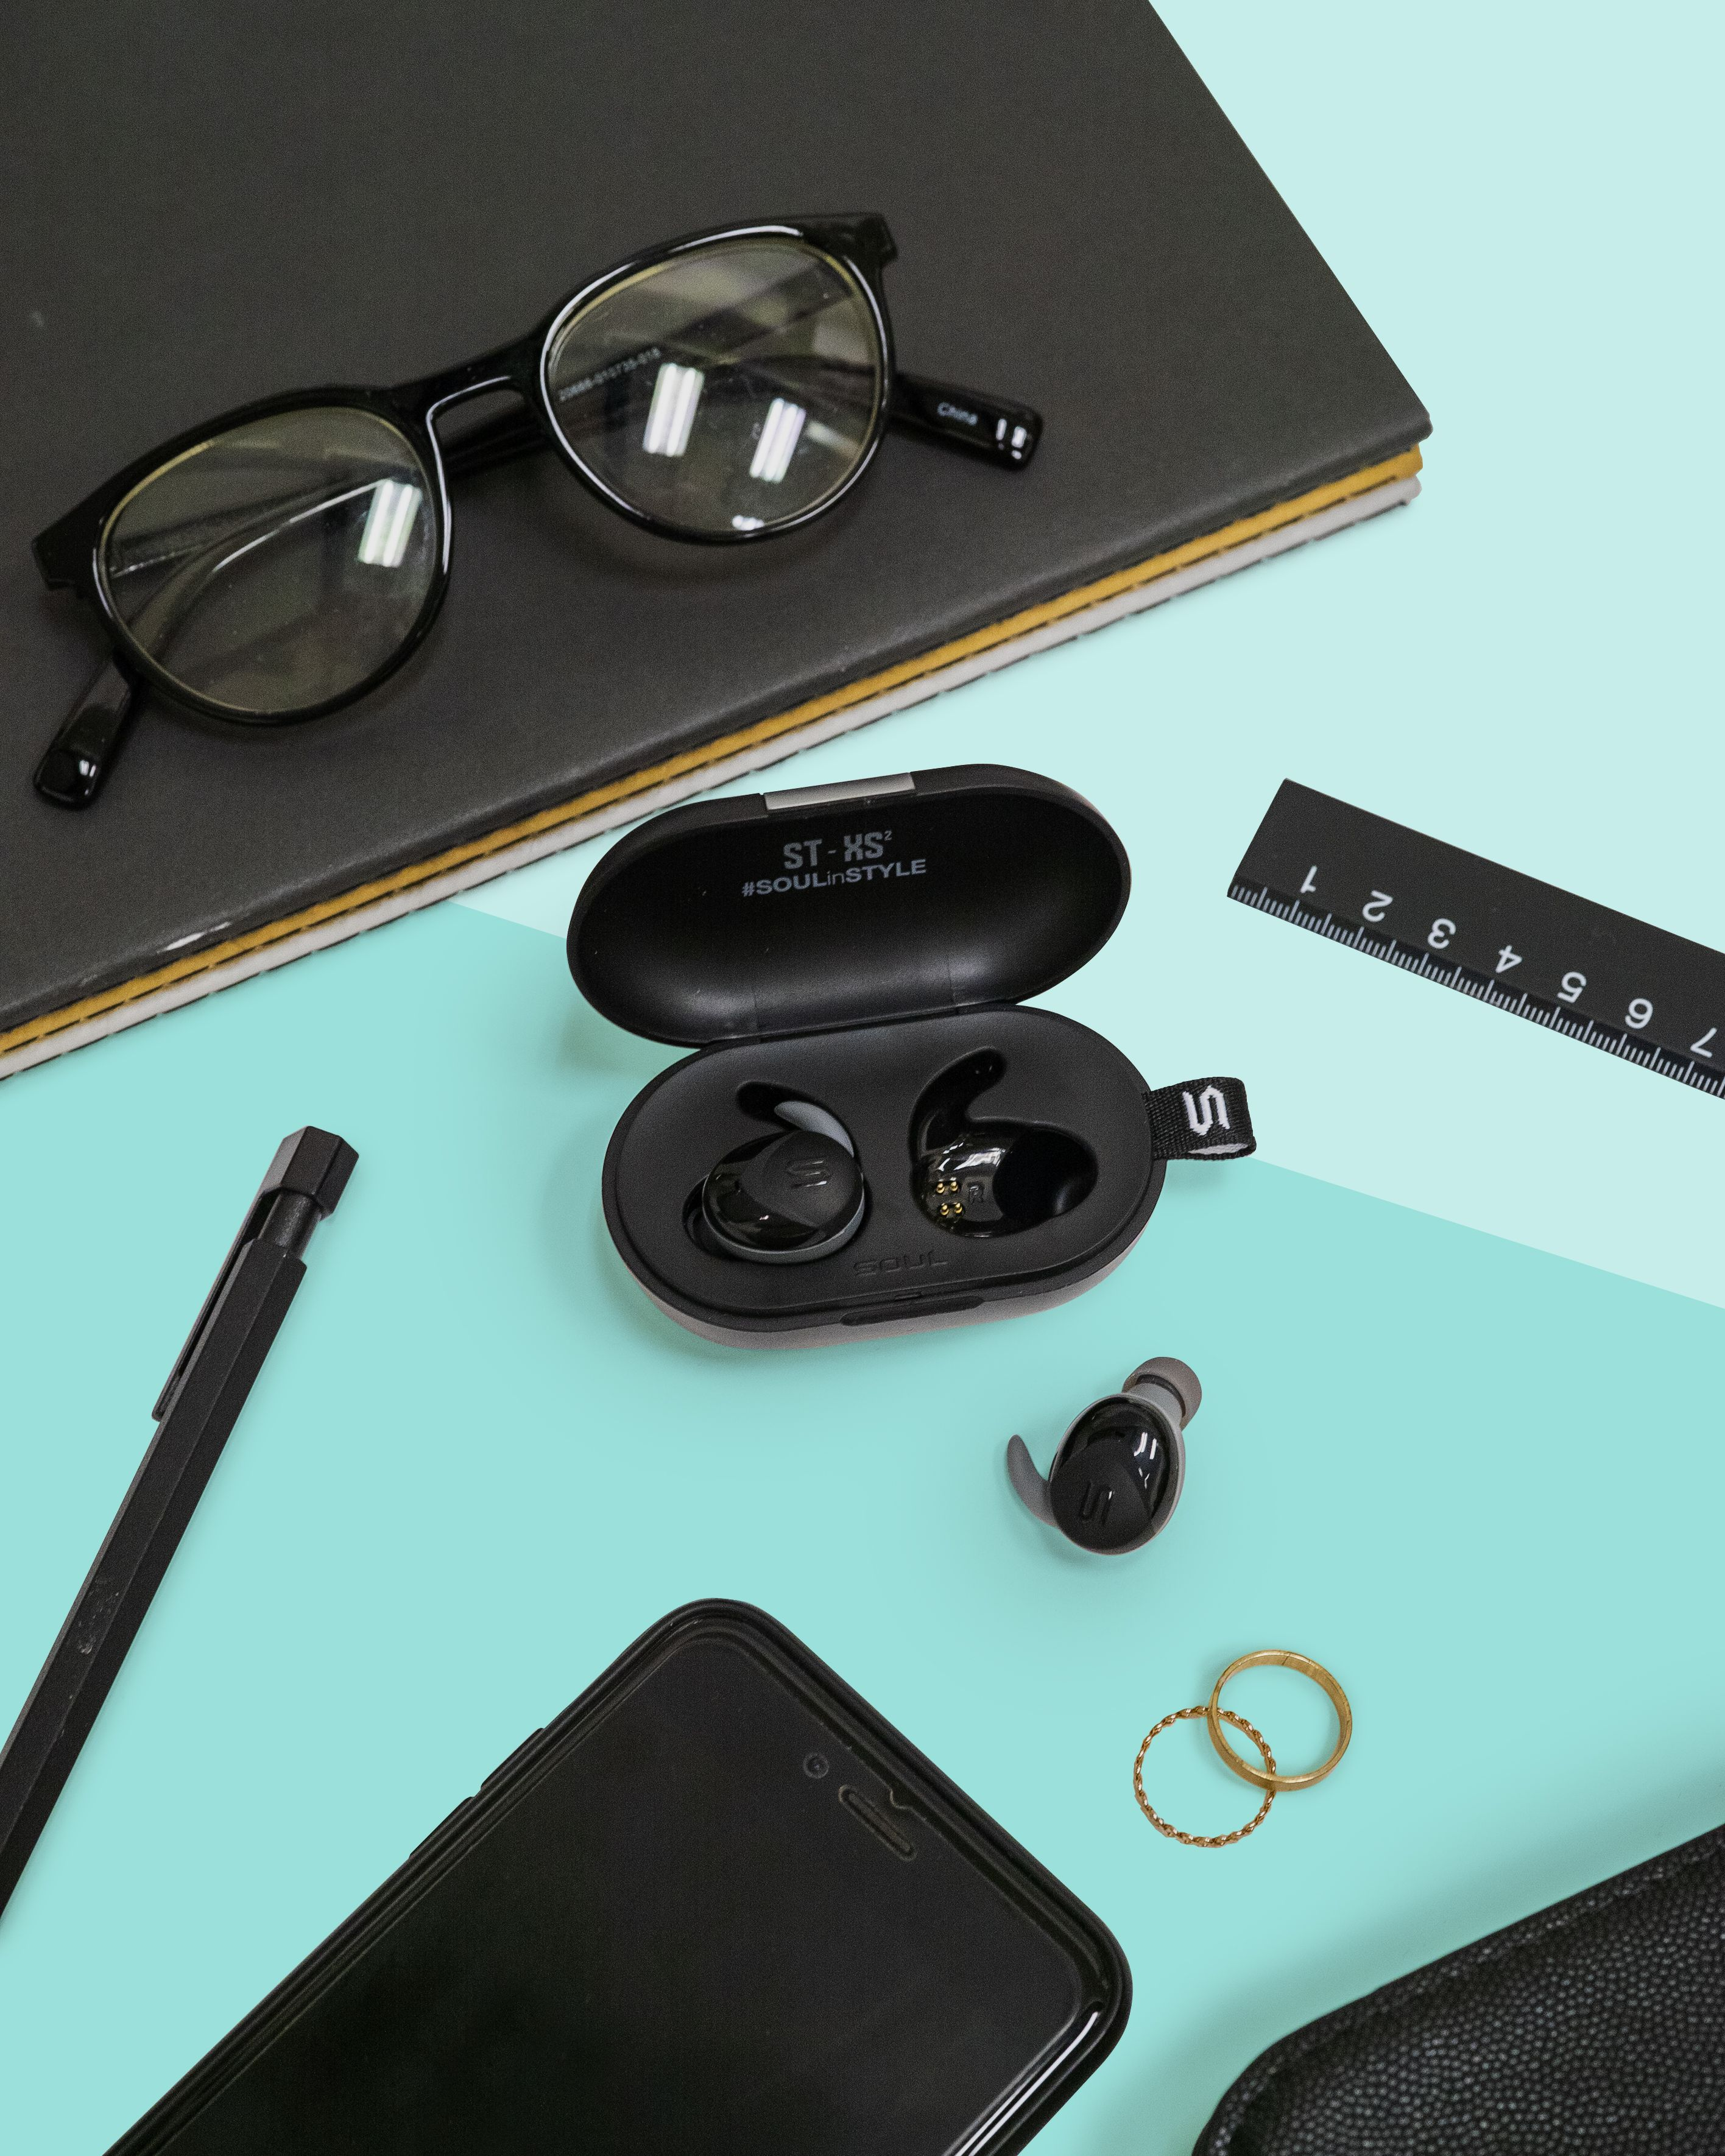 6cd4555f6dc Introducing ST-XS2, the truly wireless earphone designed with IPX7  weatherproof protection and ergonomic